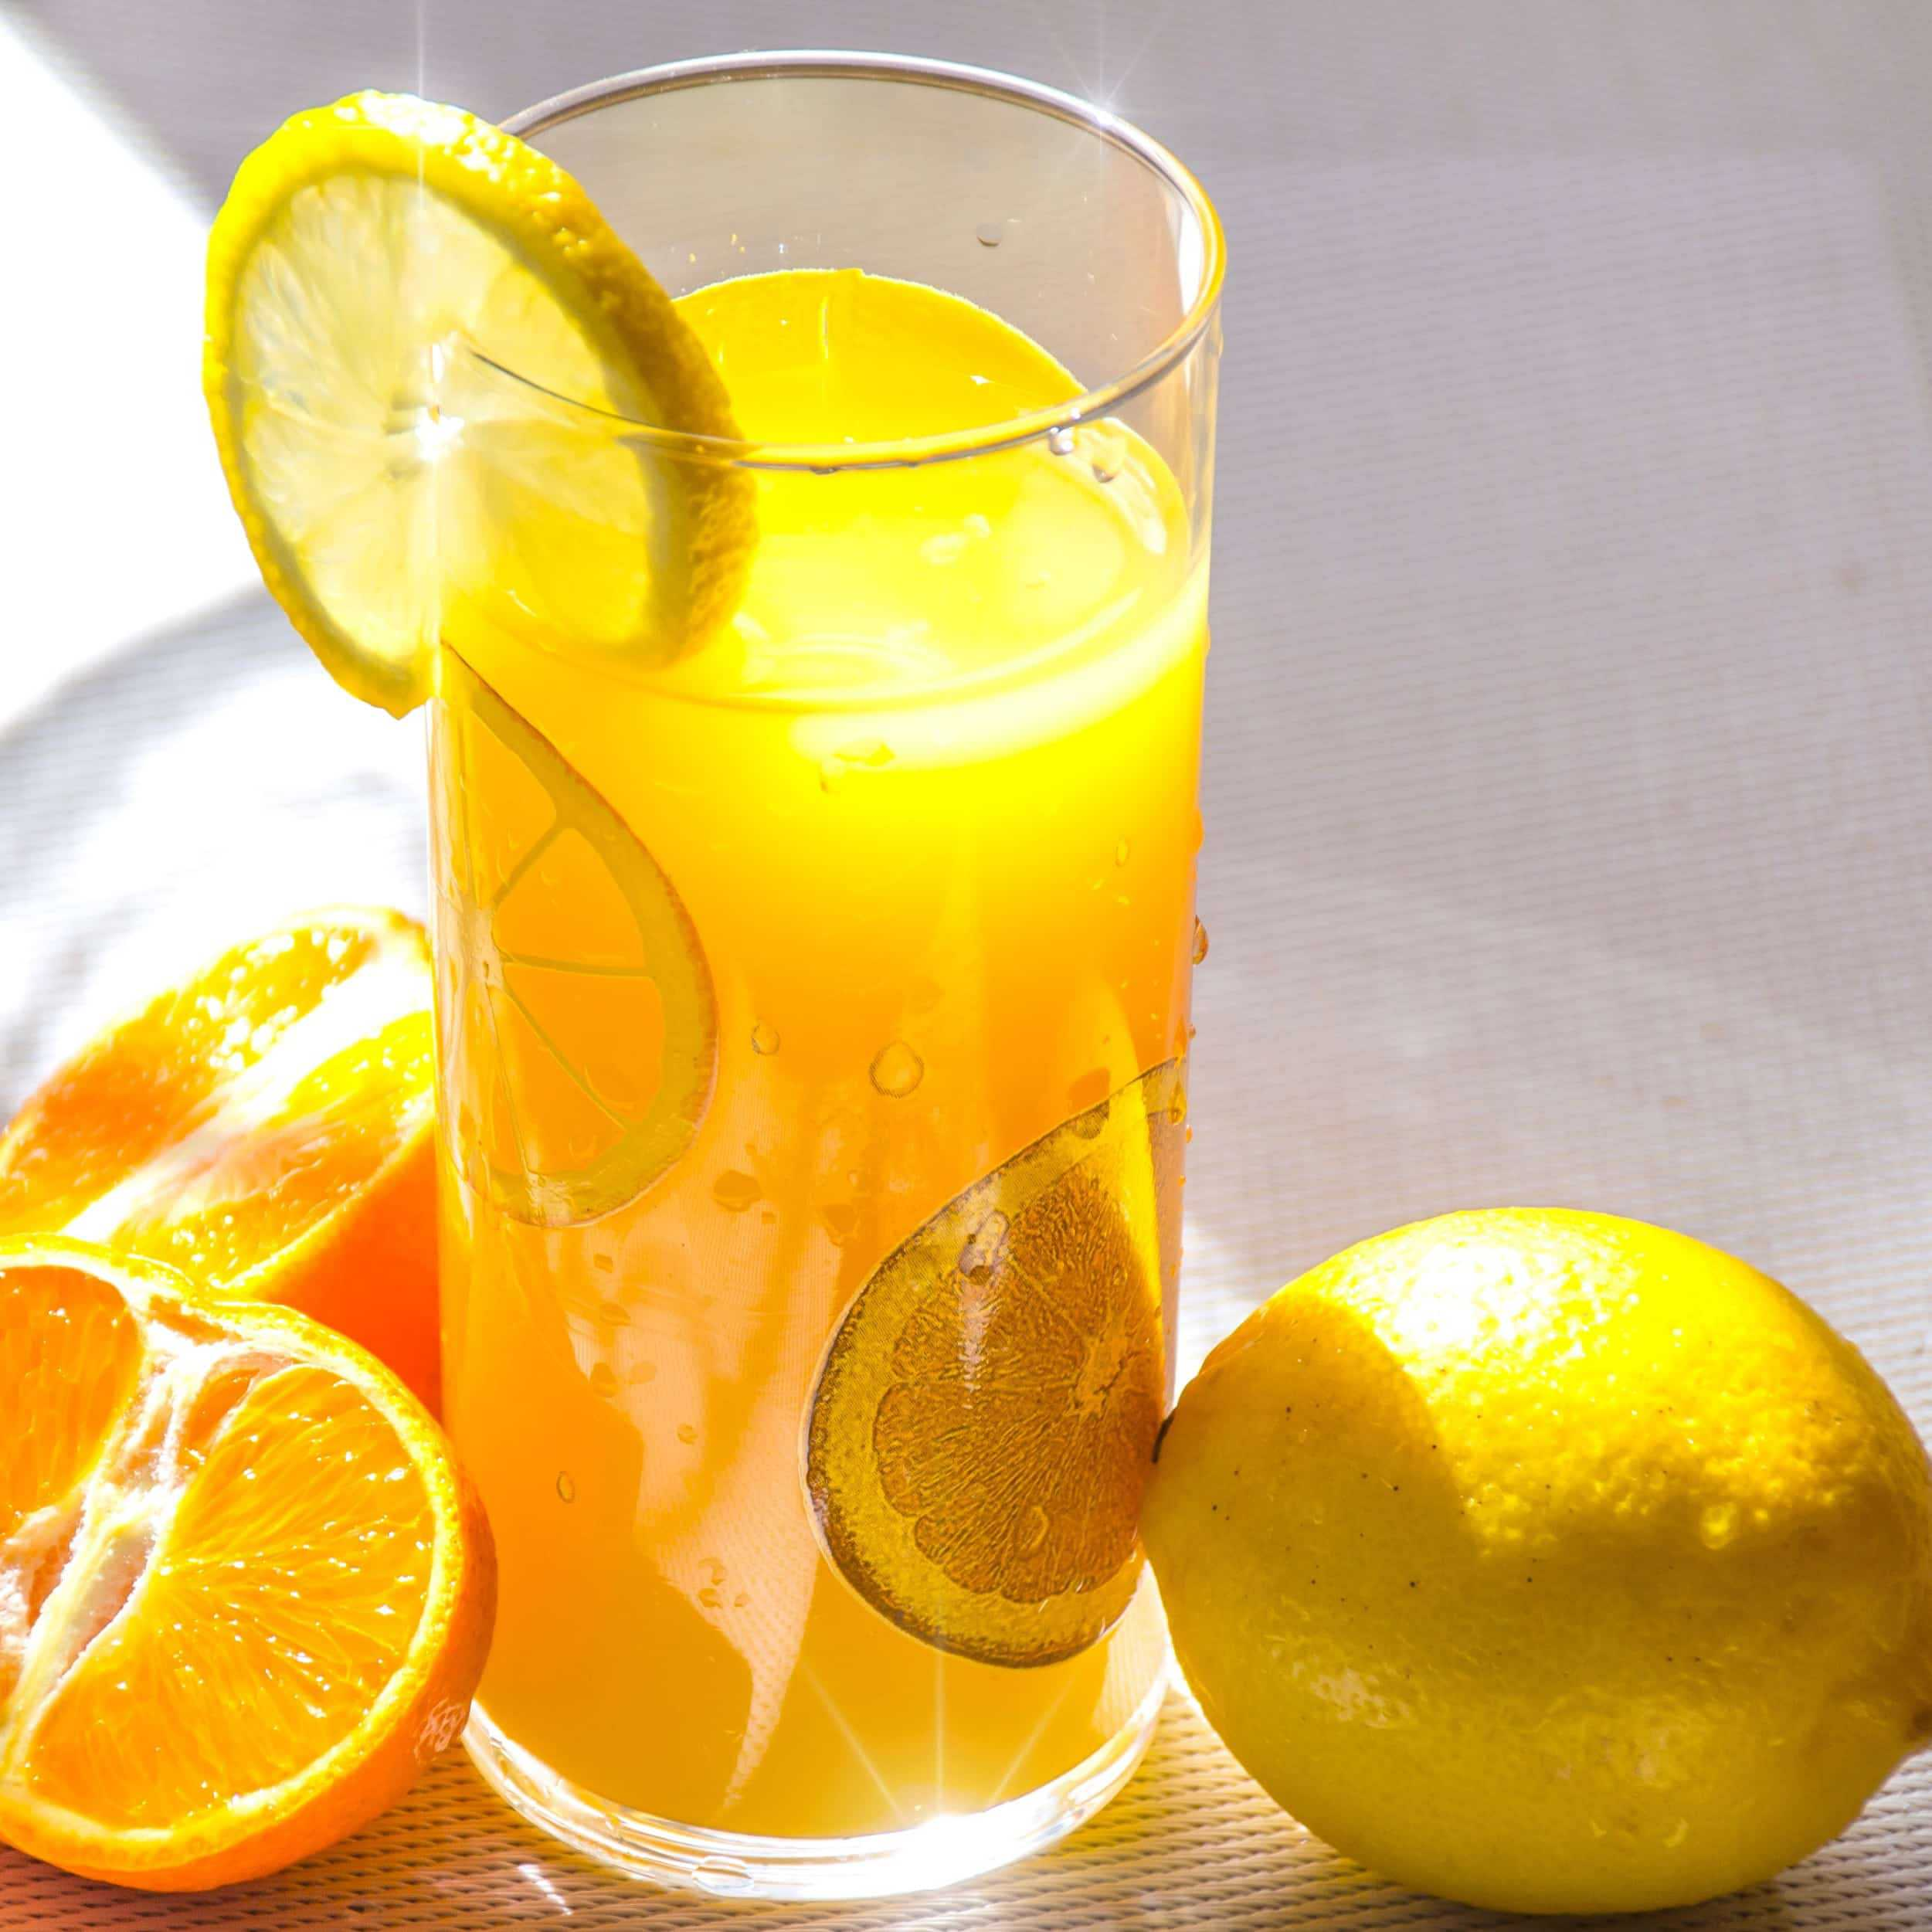 Healthy lifestyle for fast alcohol detox